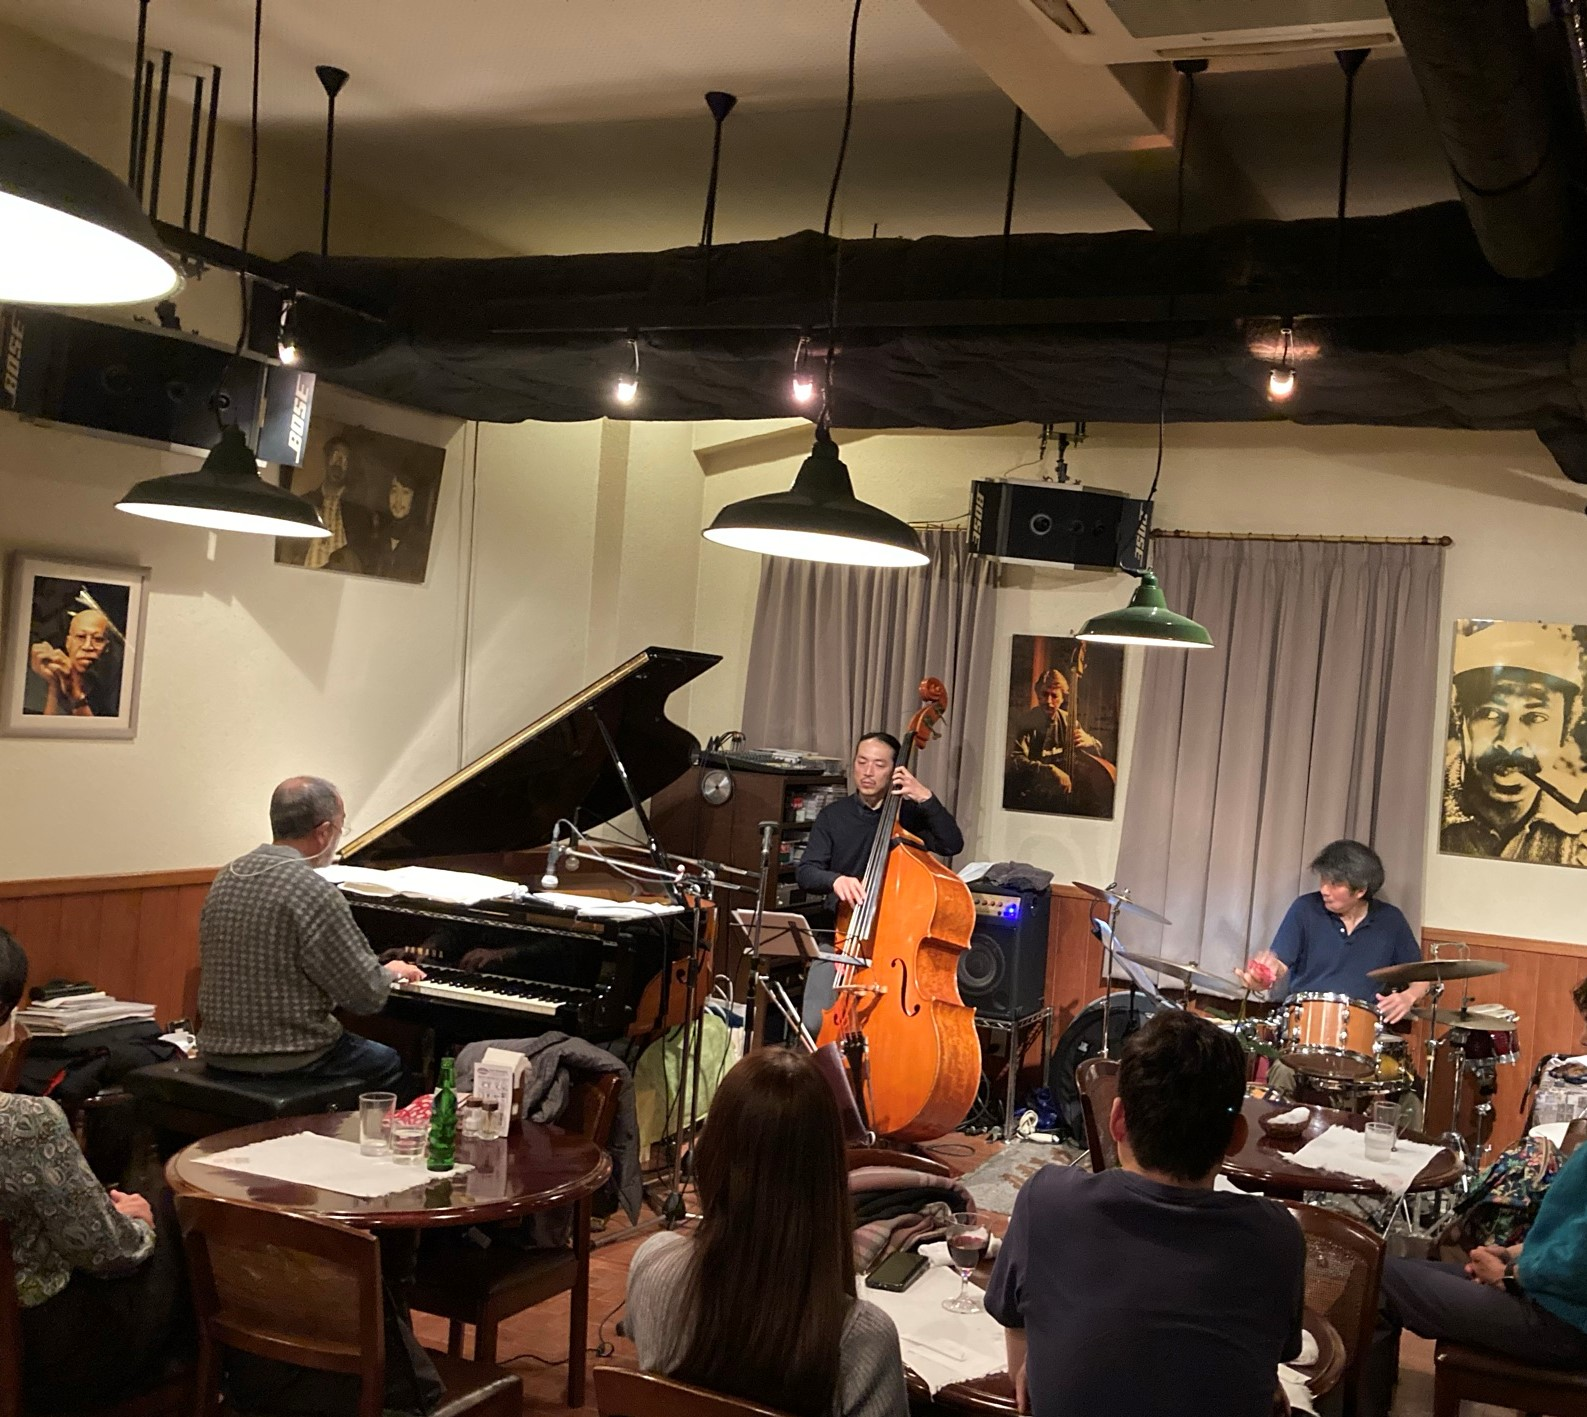 http://jazzclub-overseas.com/blog/jazz_club_overseas/12_19469.jpeg